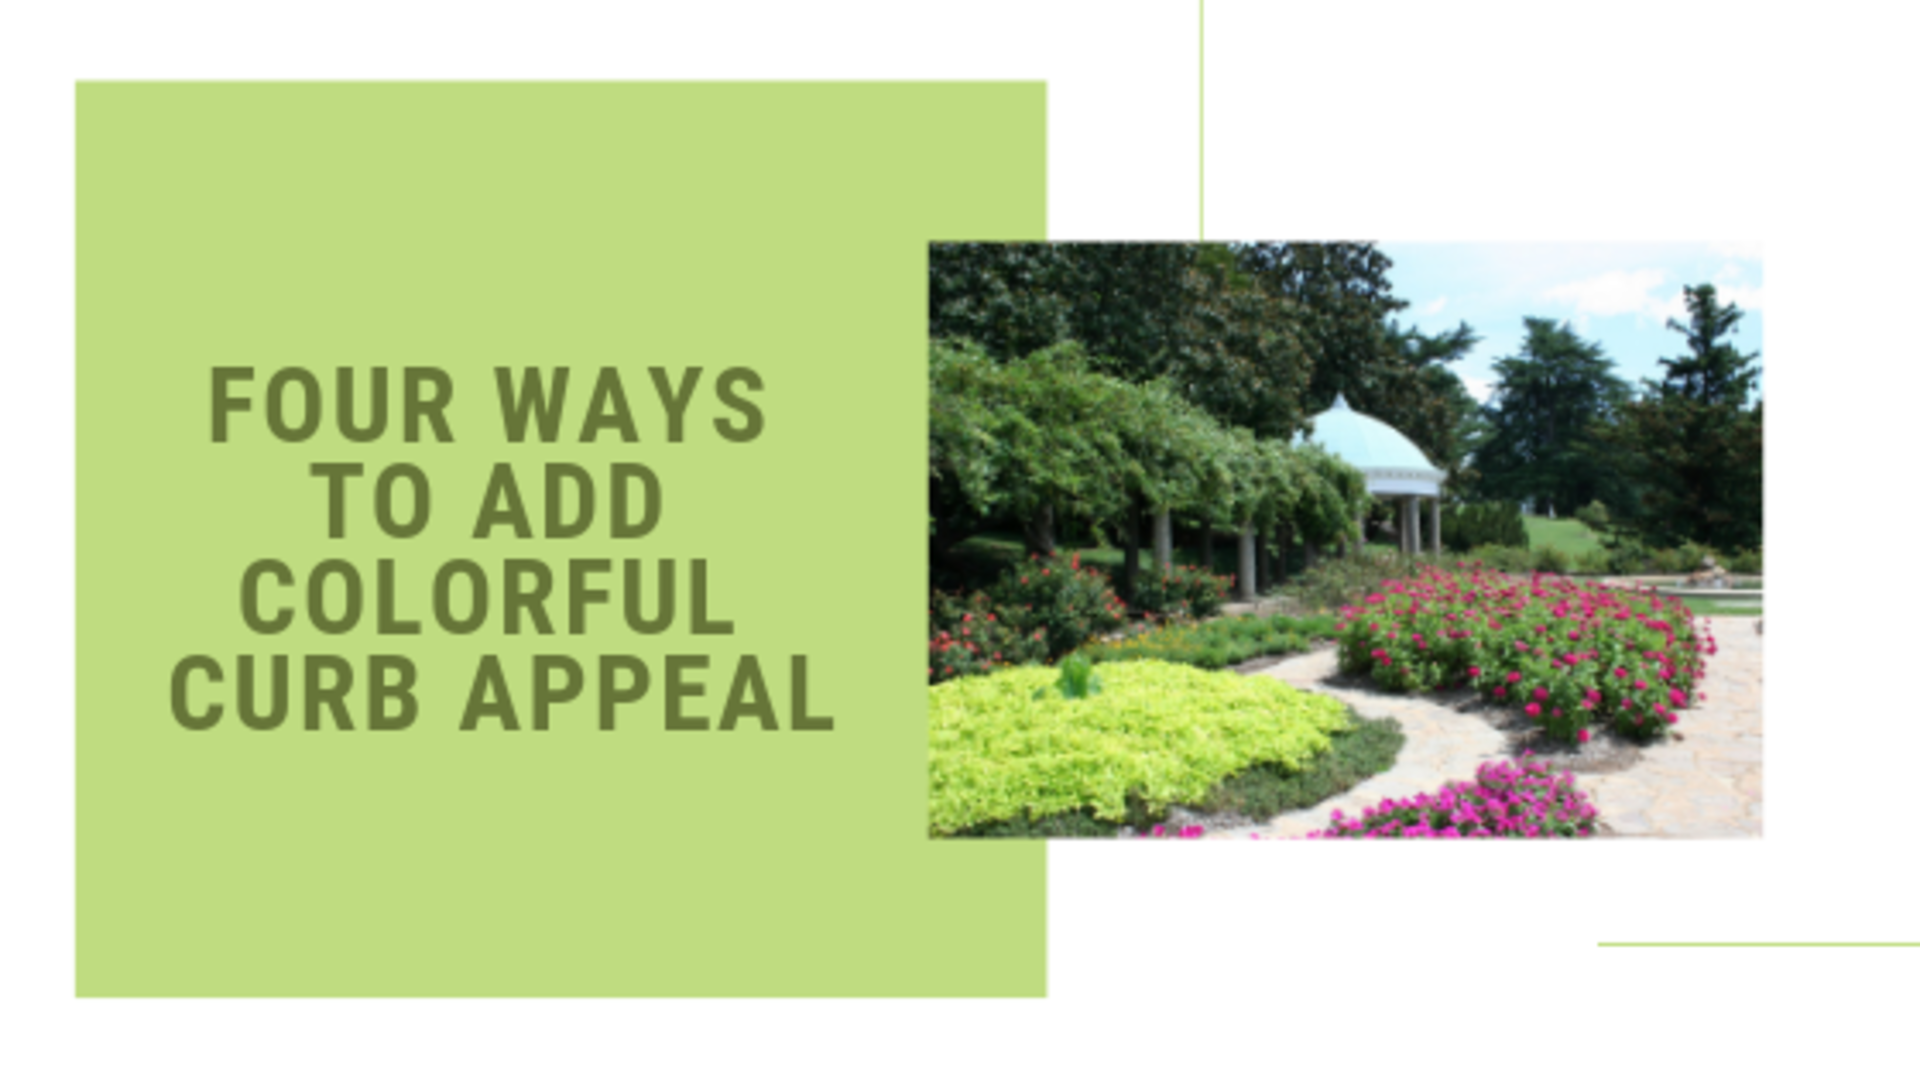 Four Ways To Add Colorful Curb Appeal To Your New Home